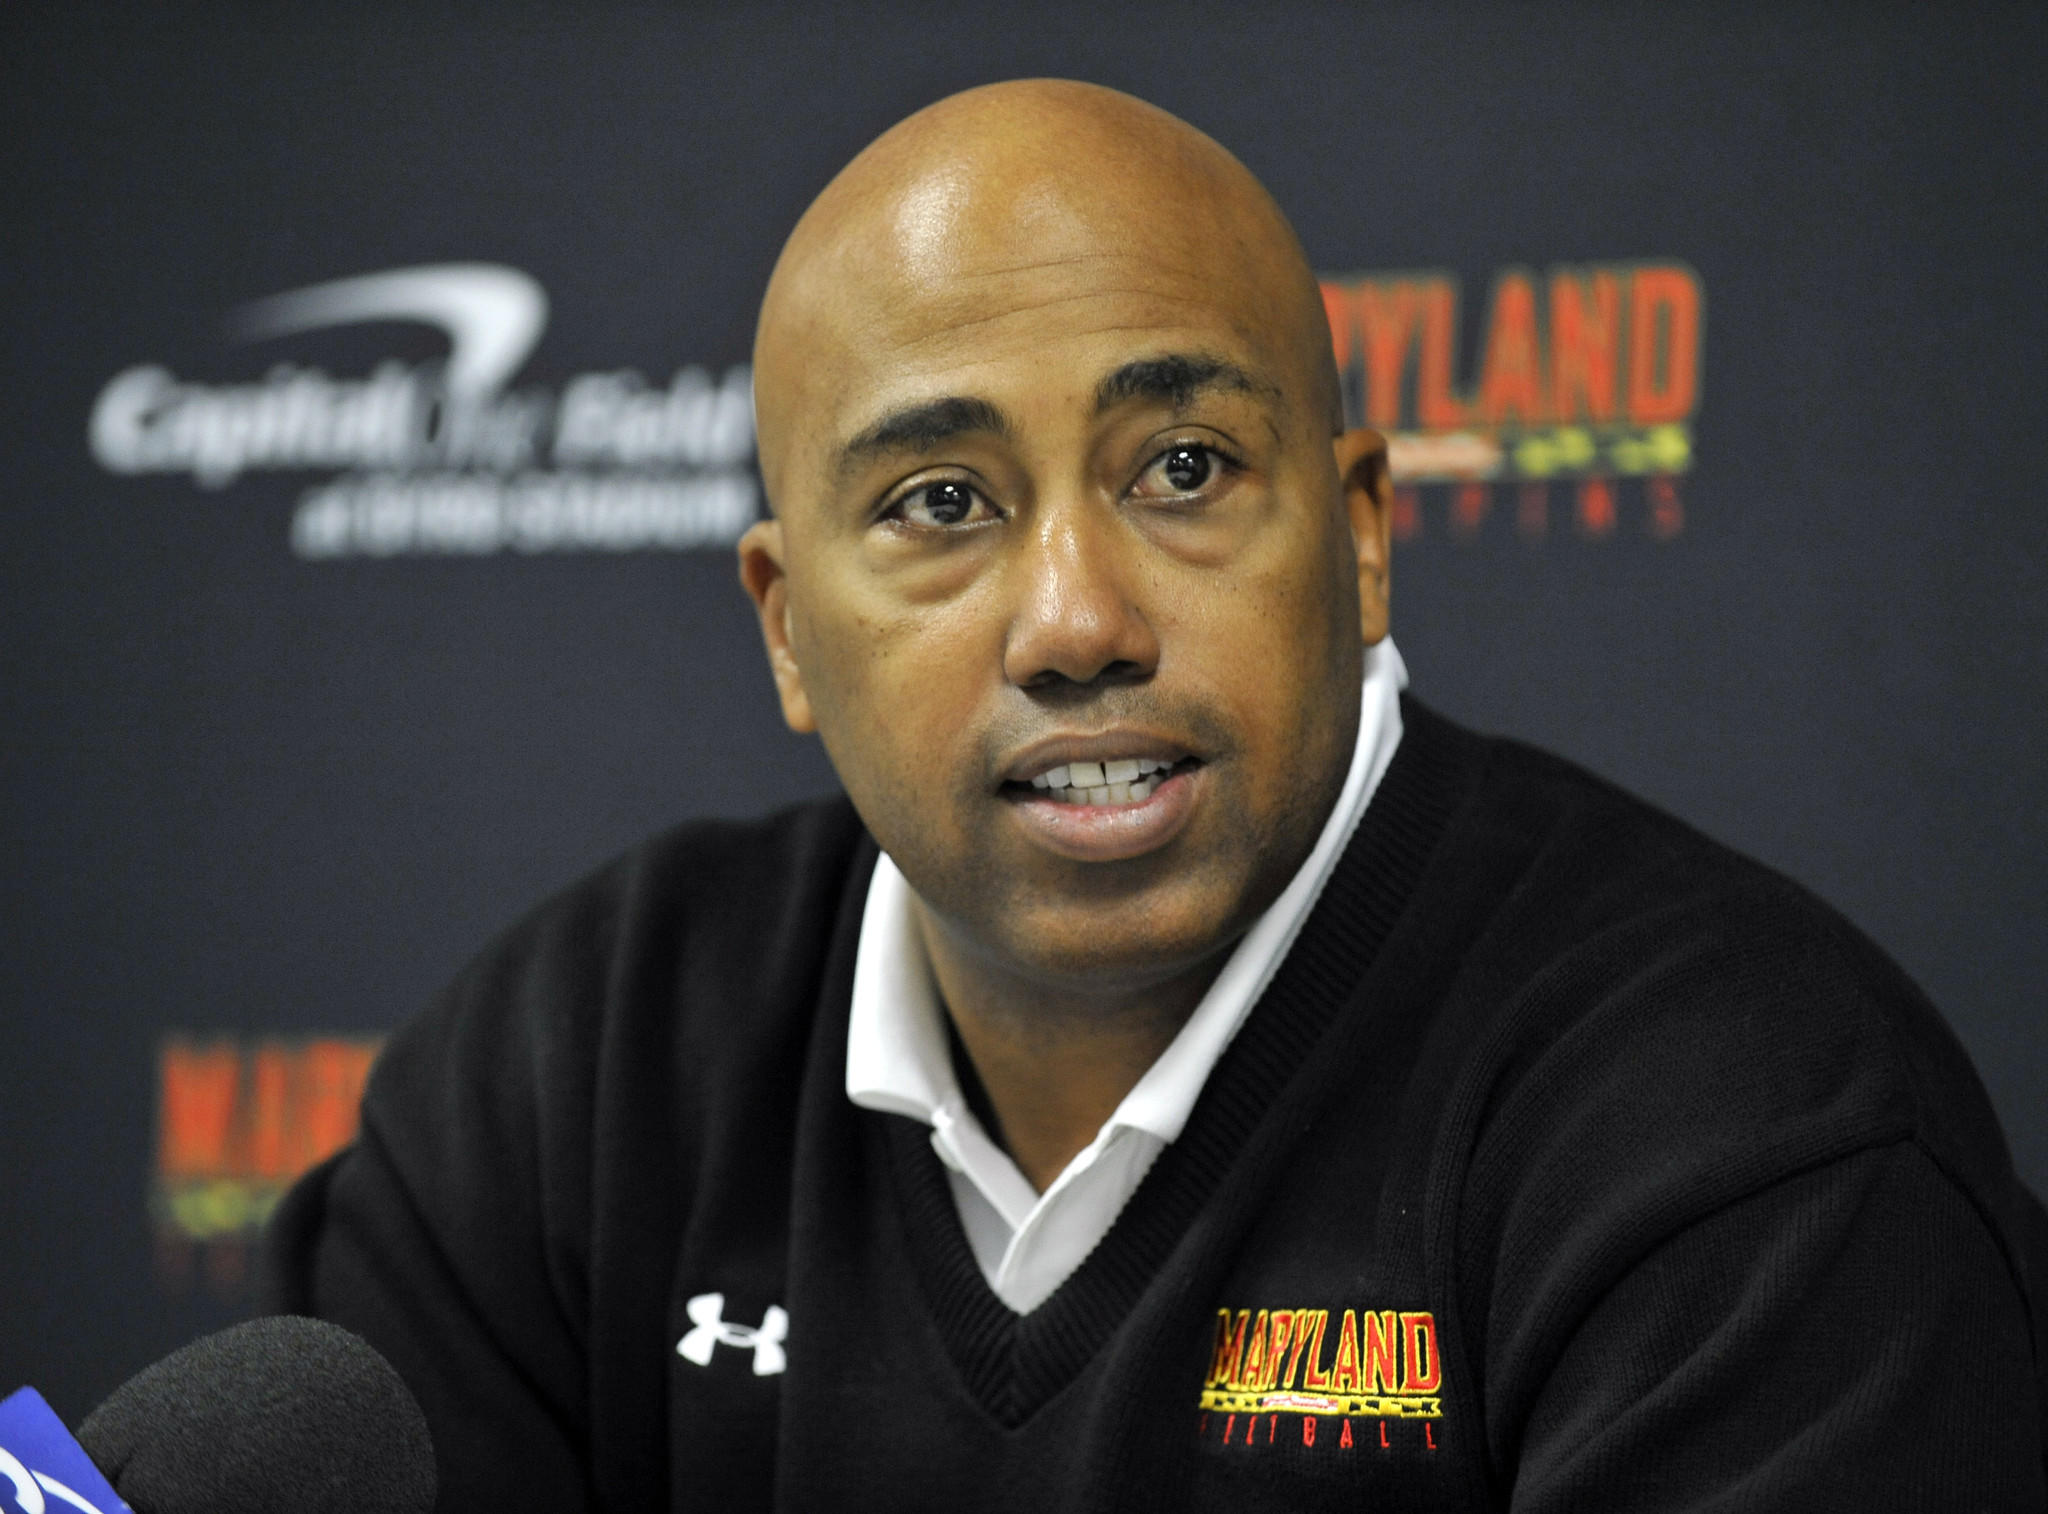 Maryland defensive coordinator Brian Stewart speaks to the media in February 2012.